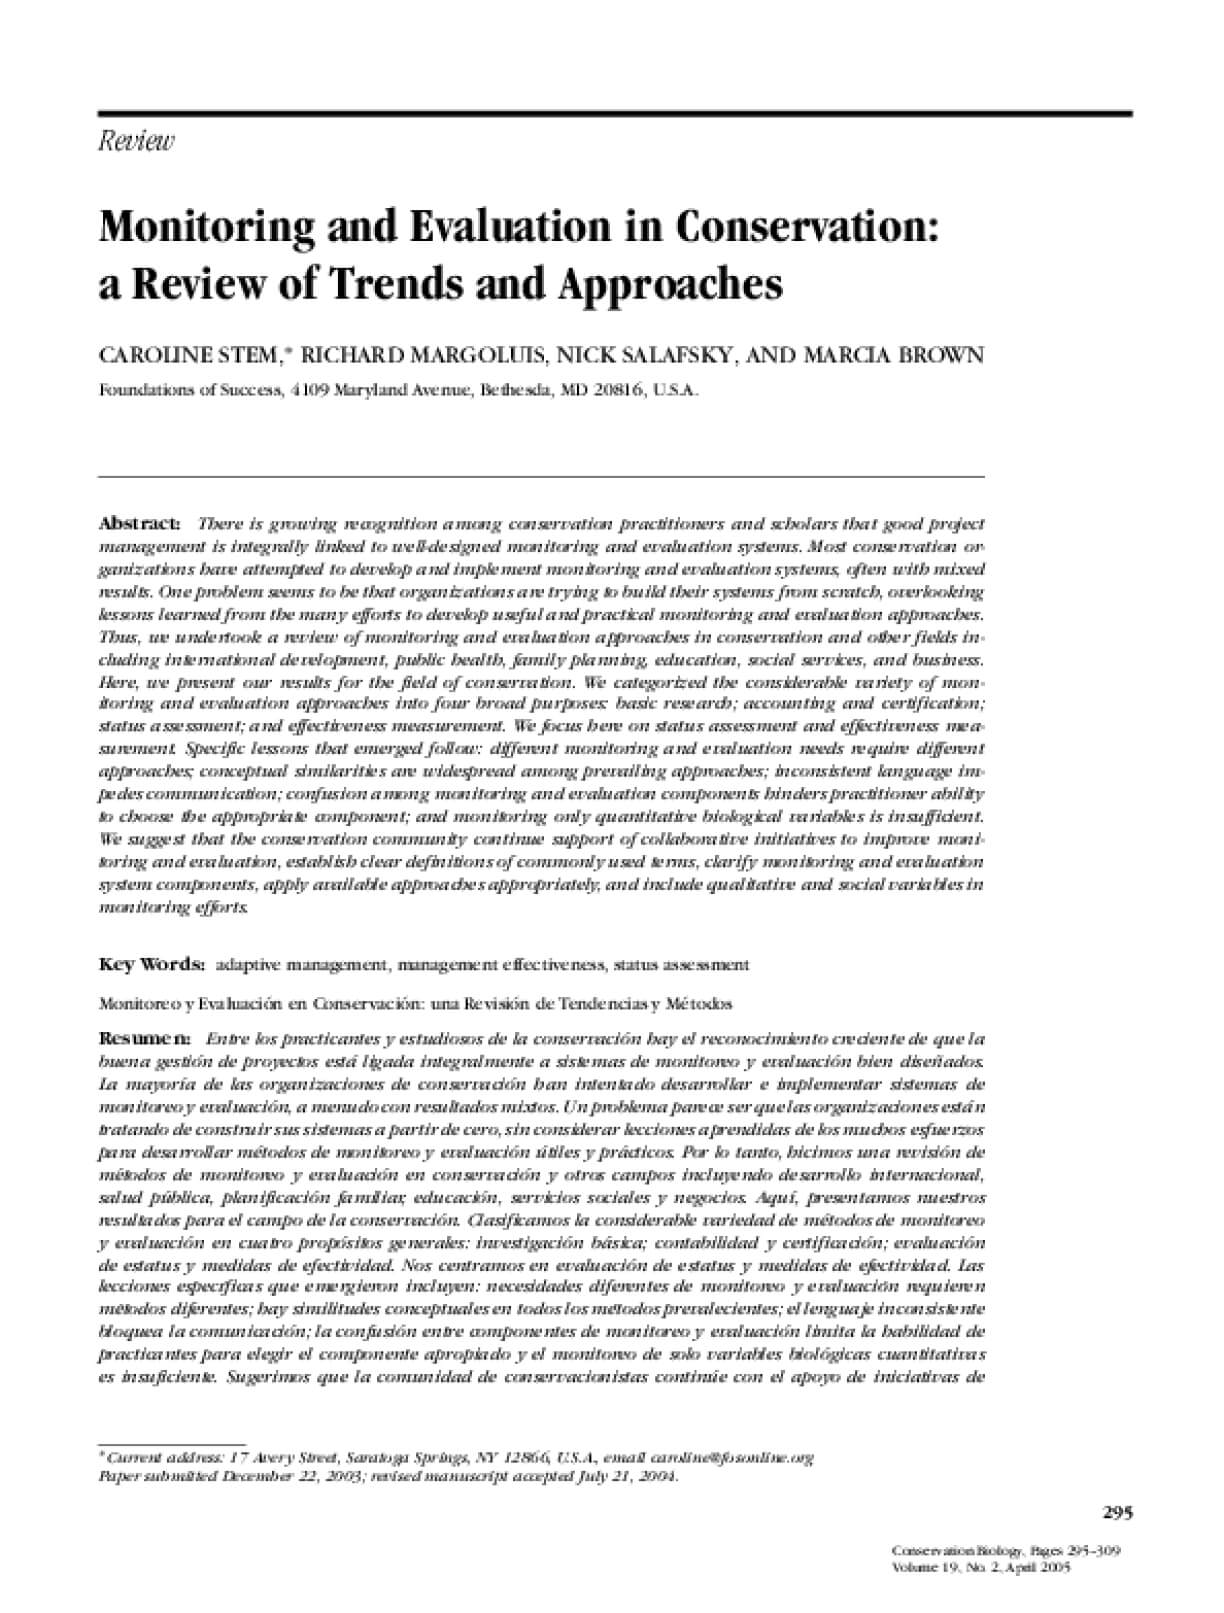 Monitoring and Evaluation in Conservation: A Review of Trends and Approaches